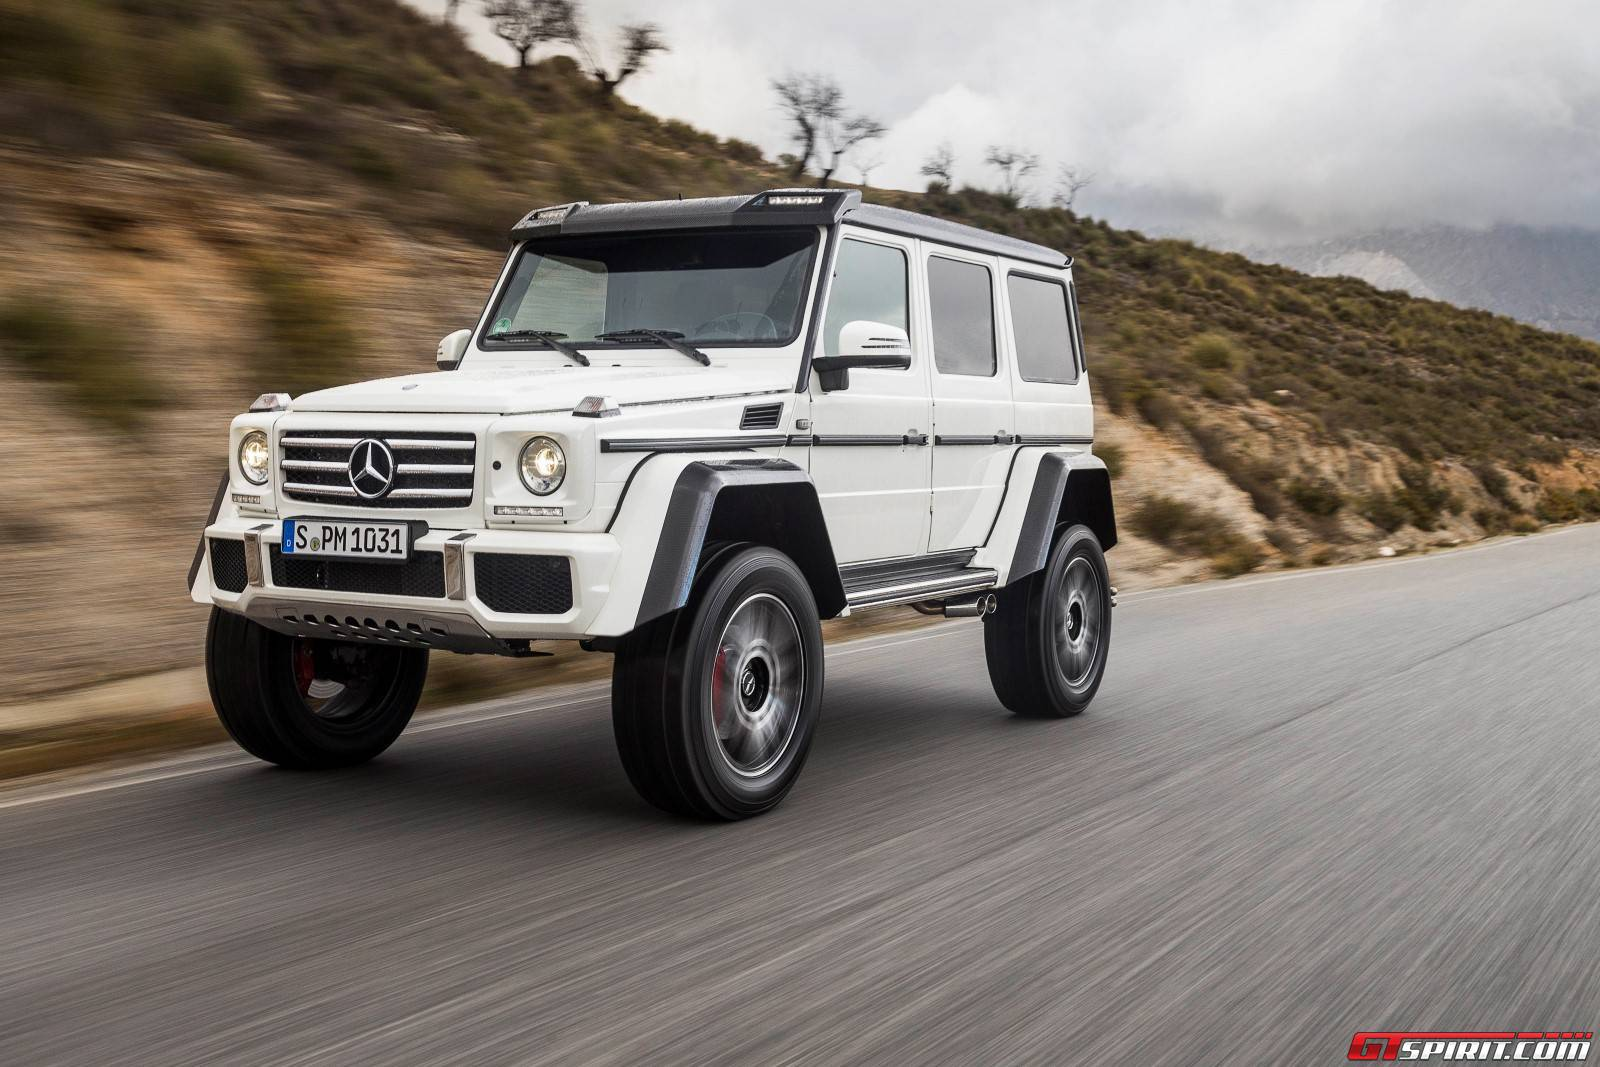 Mercedes benz g500 4x4 square mercedes benz for Mercedes benz g wagon squared